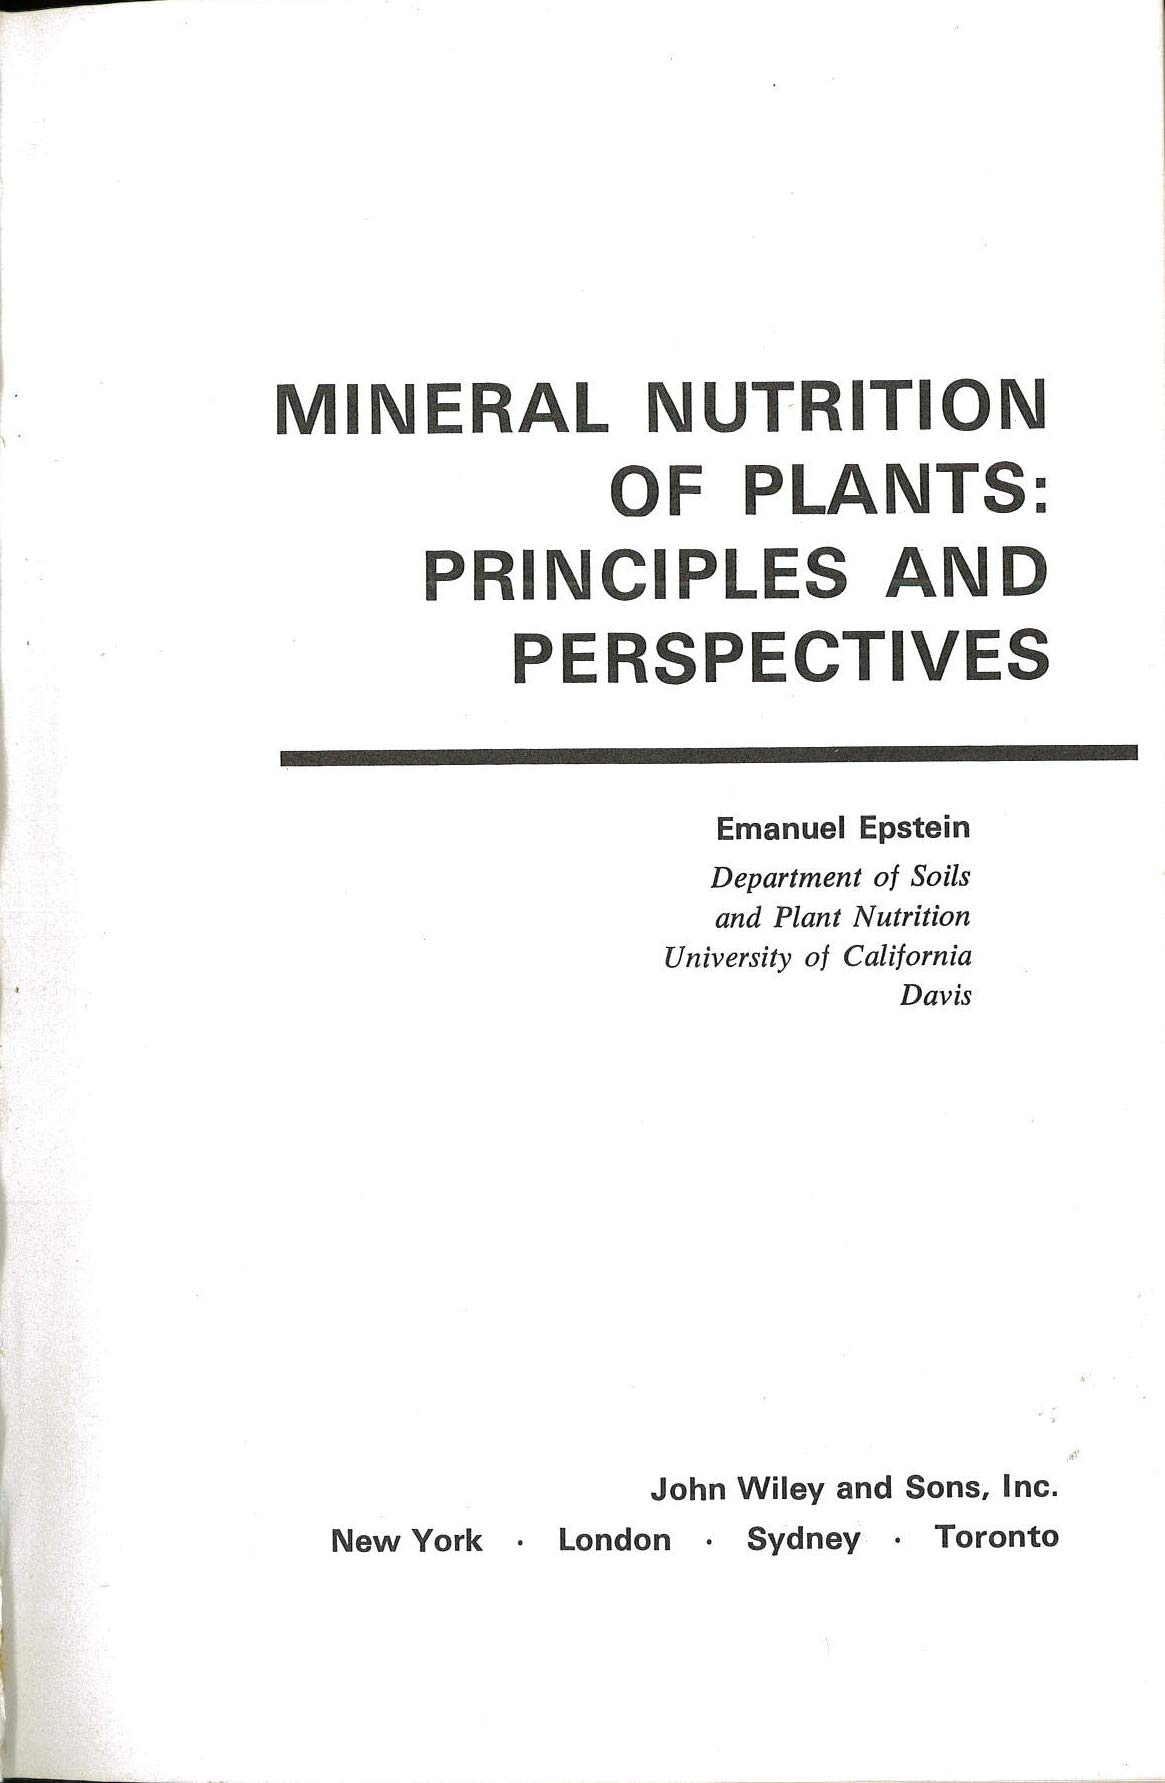 Buy Epstein Mineral Nutrition Of *plants* - Principles Andperspectives Book  Online at Low Prices in India | Epstein Mineral Nutrition Of *plants* ...